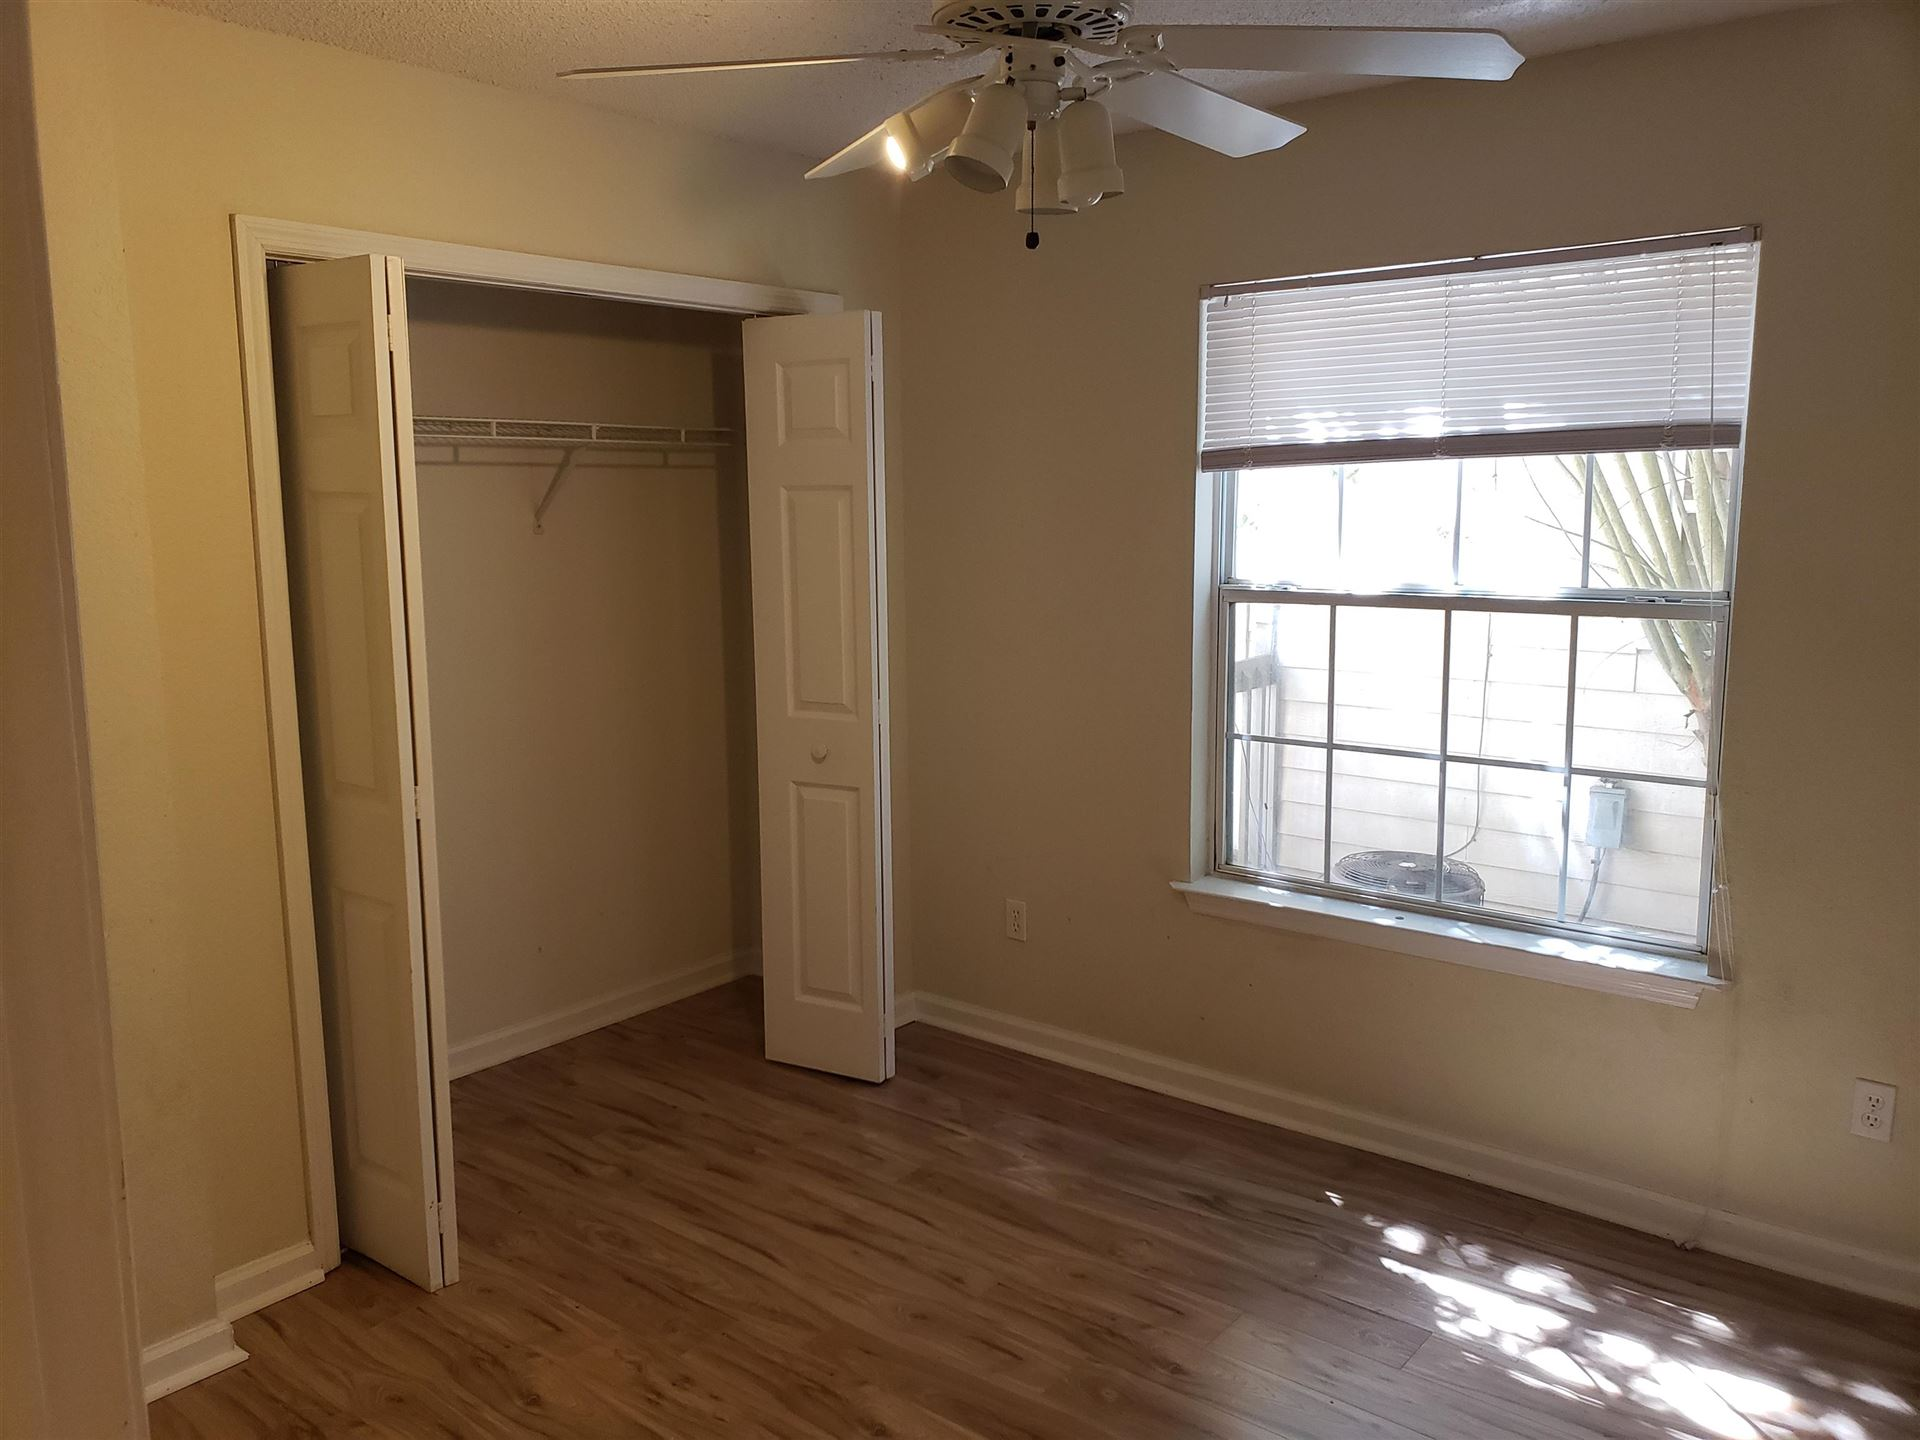 Photo of 3394 Tansey Court, TALLAHASSEE, FL 32308 (MLS # 337527)